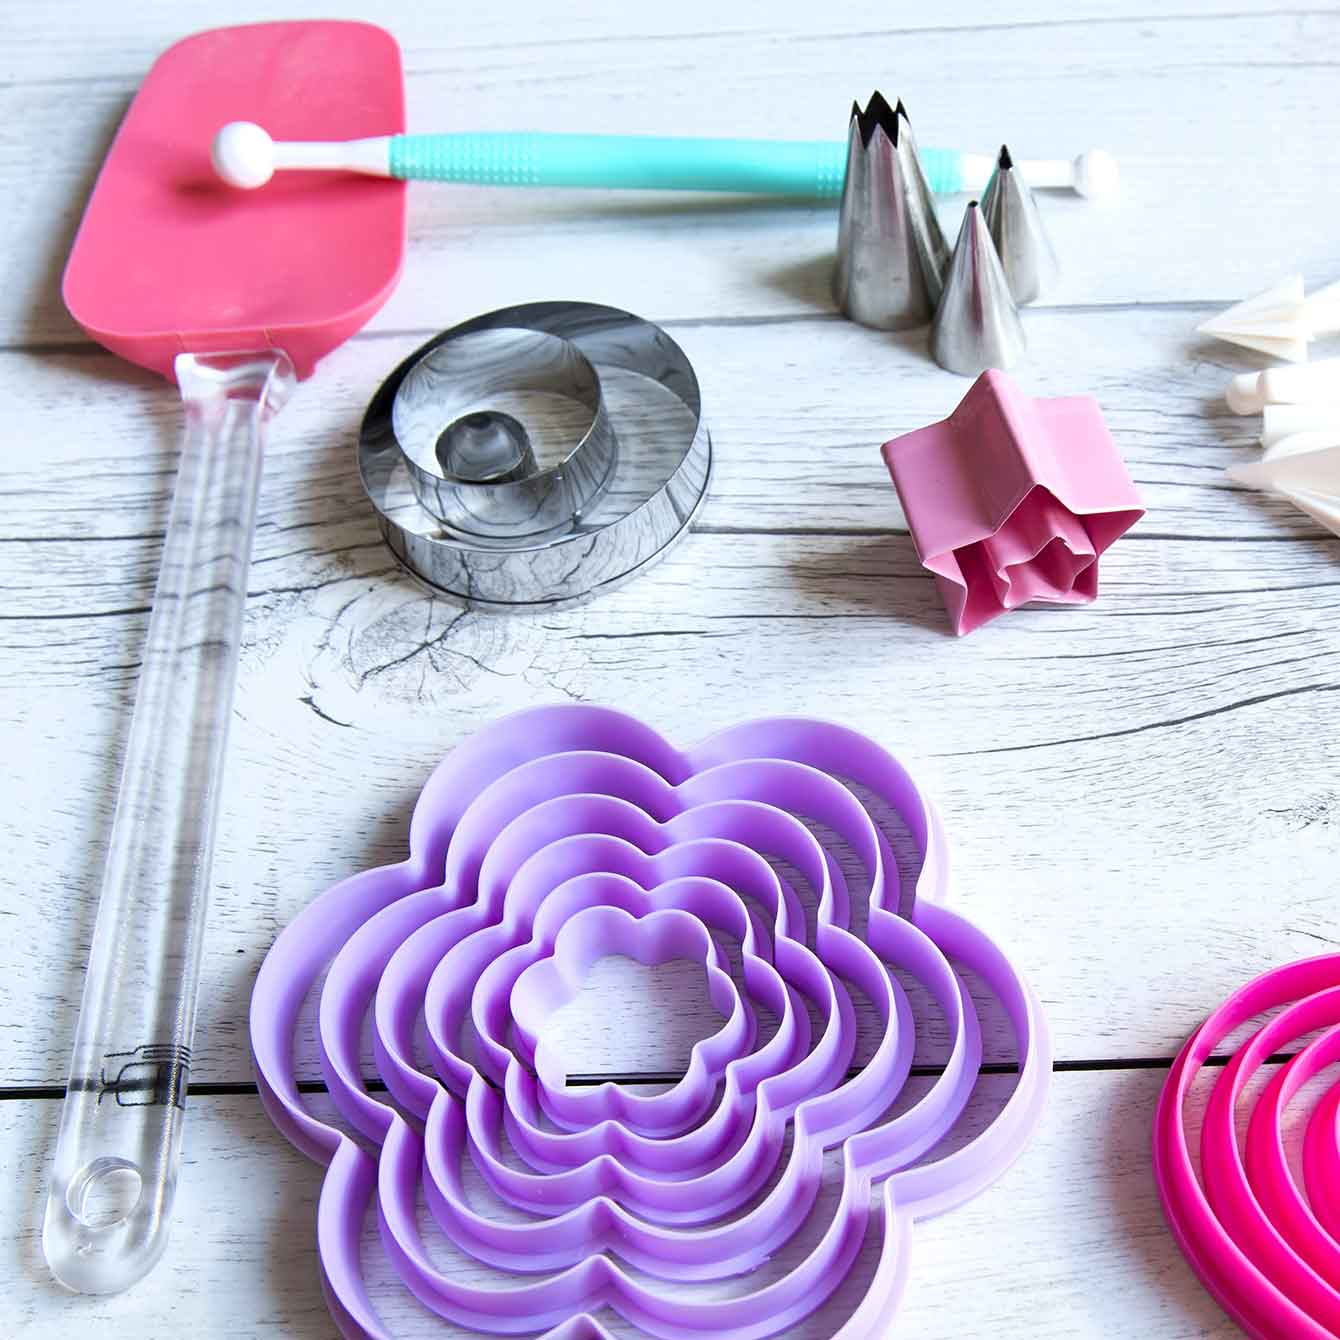 Baking Tools & Accessories